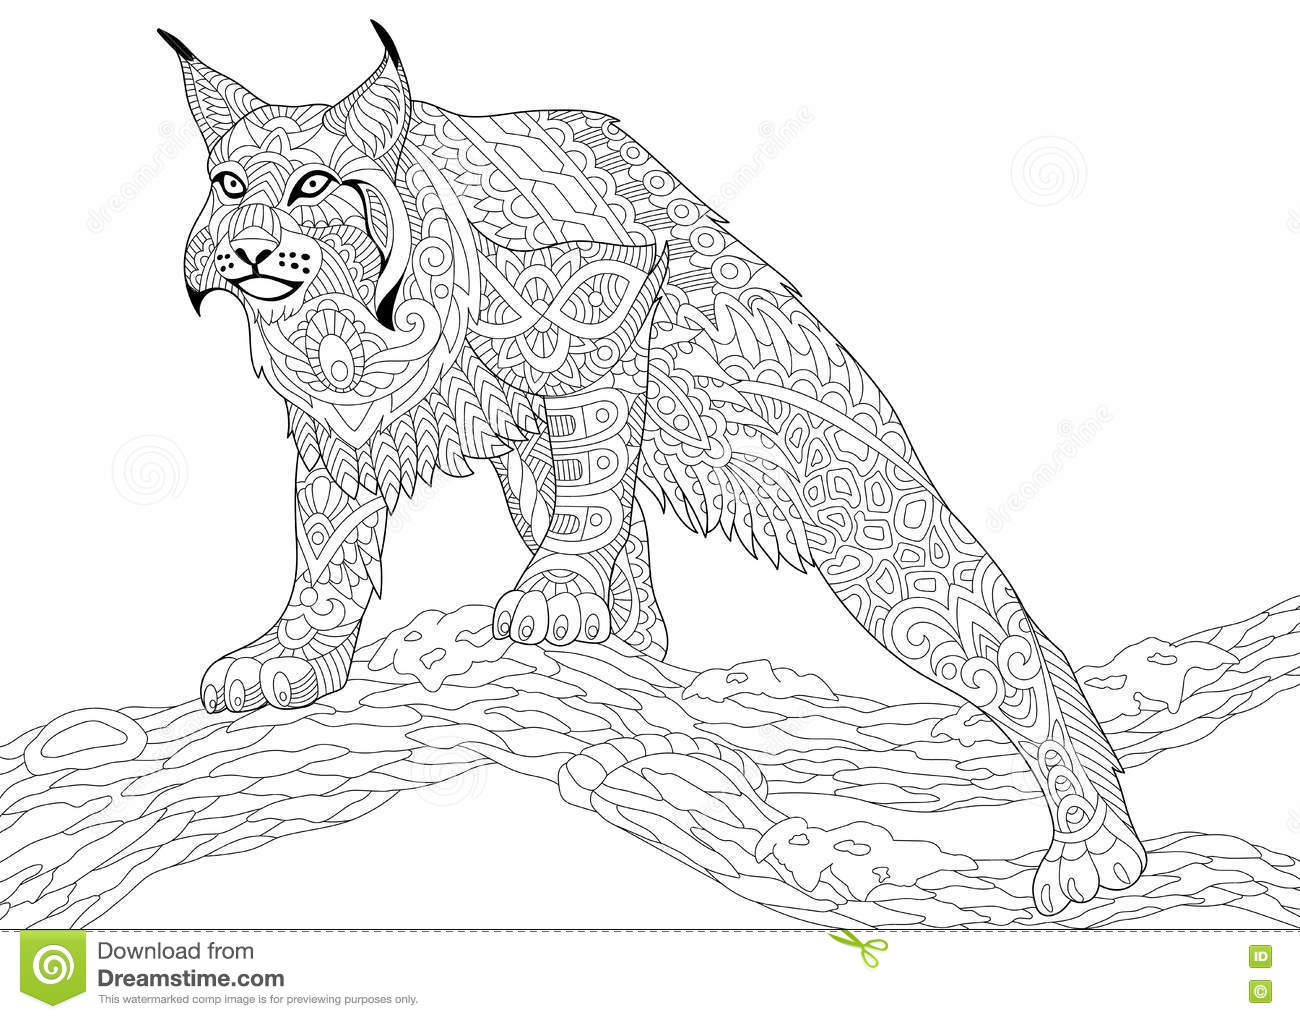 Bobcat Coloring Page Stock Illustrations 25 Bobcat Coloring Page Stock Illustrations Vectors Clipart Dreamstime